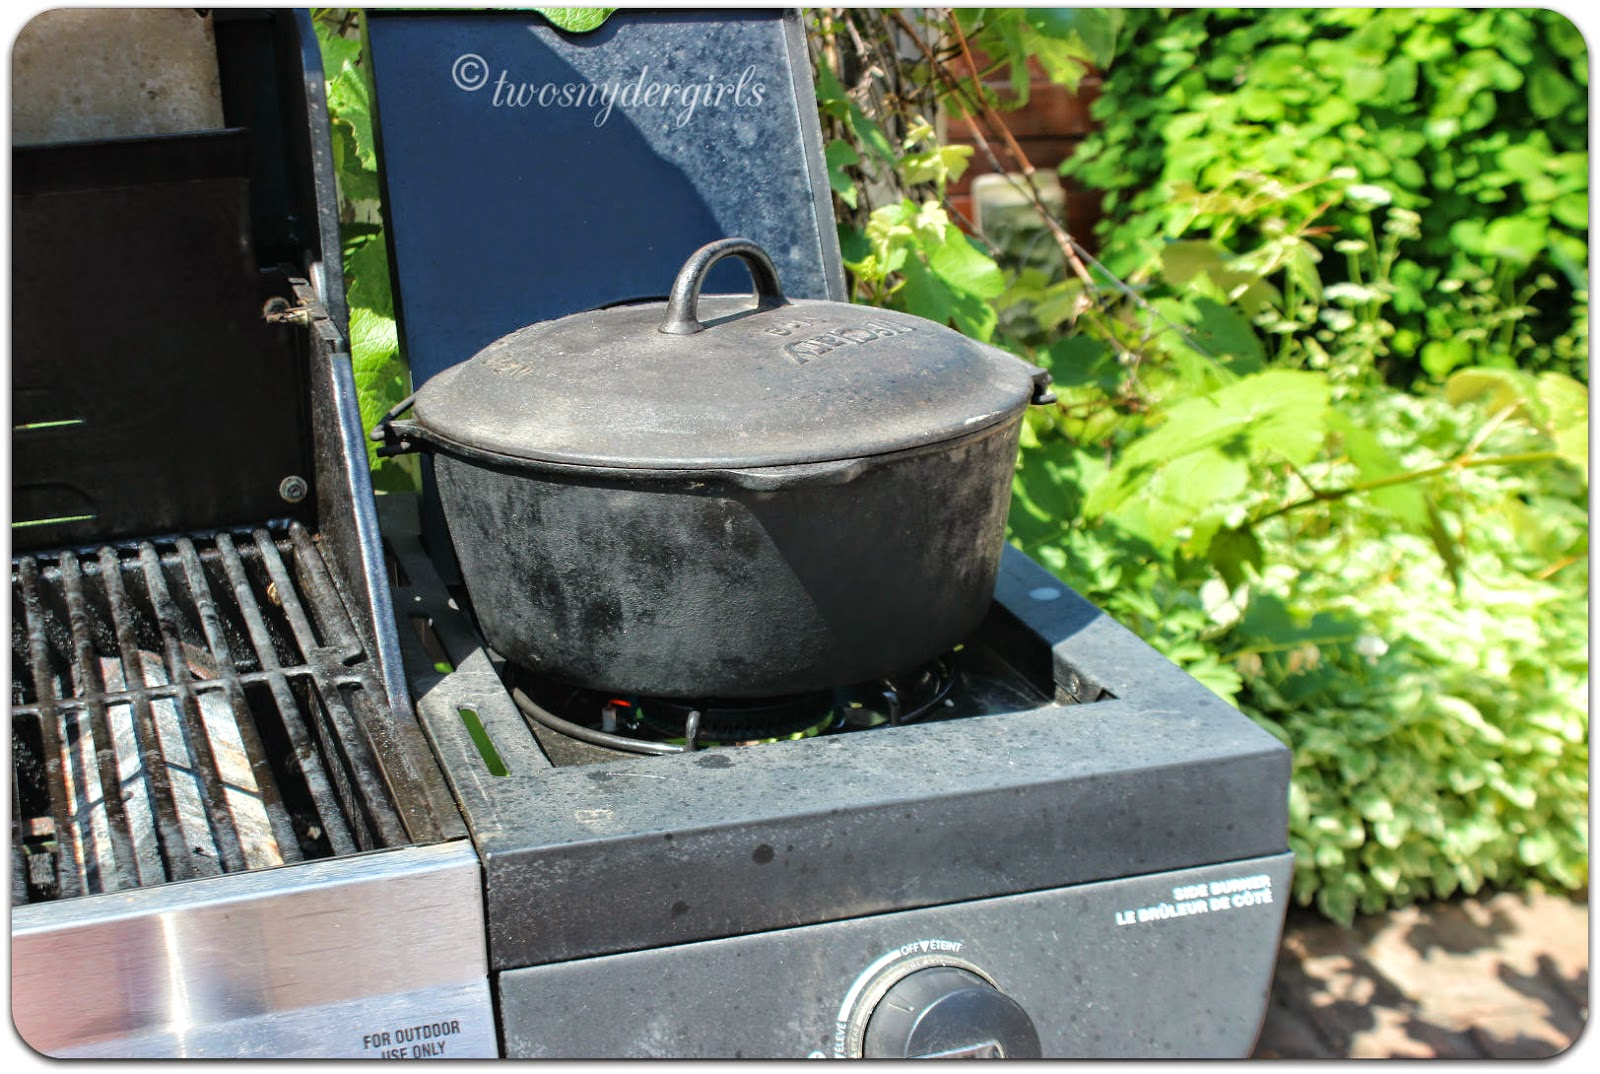 Cast Iron Cook Pot on BBQ